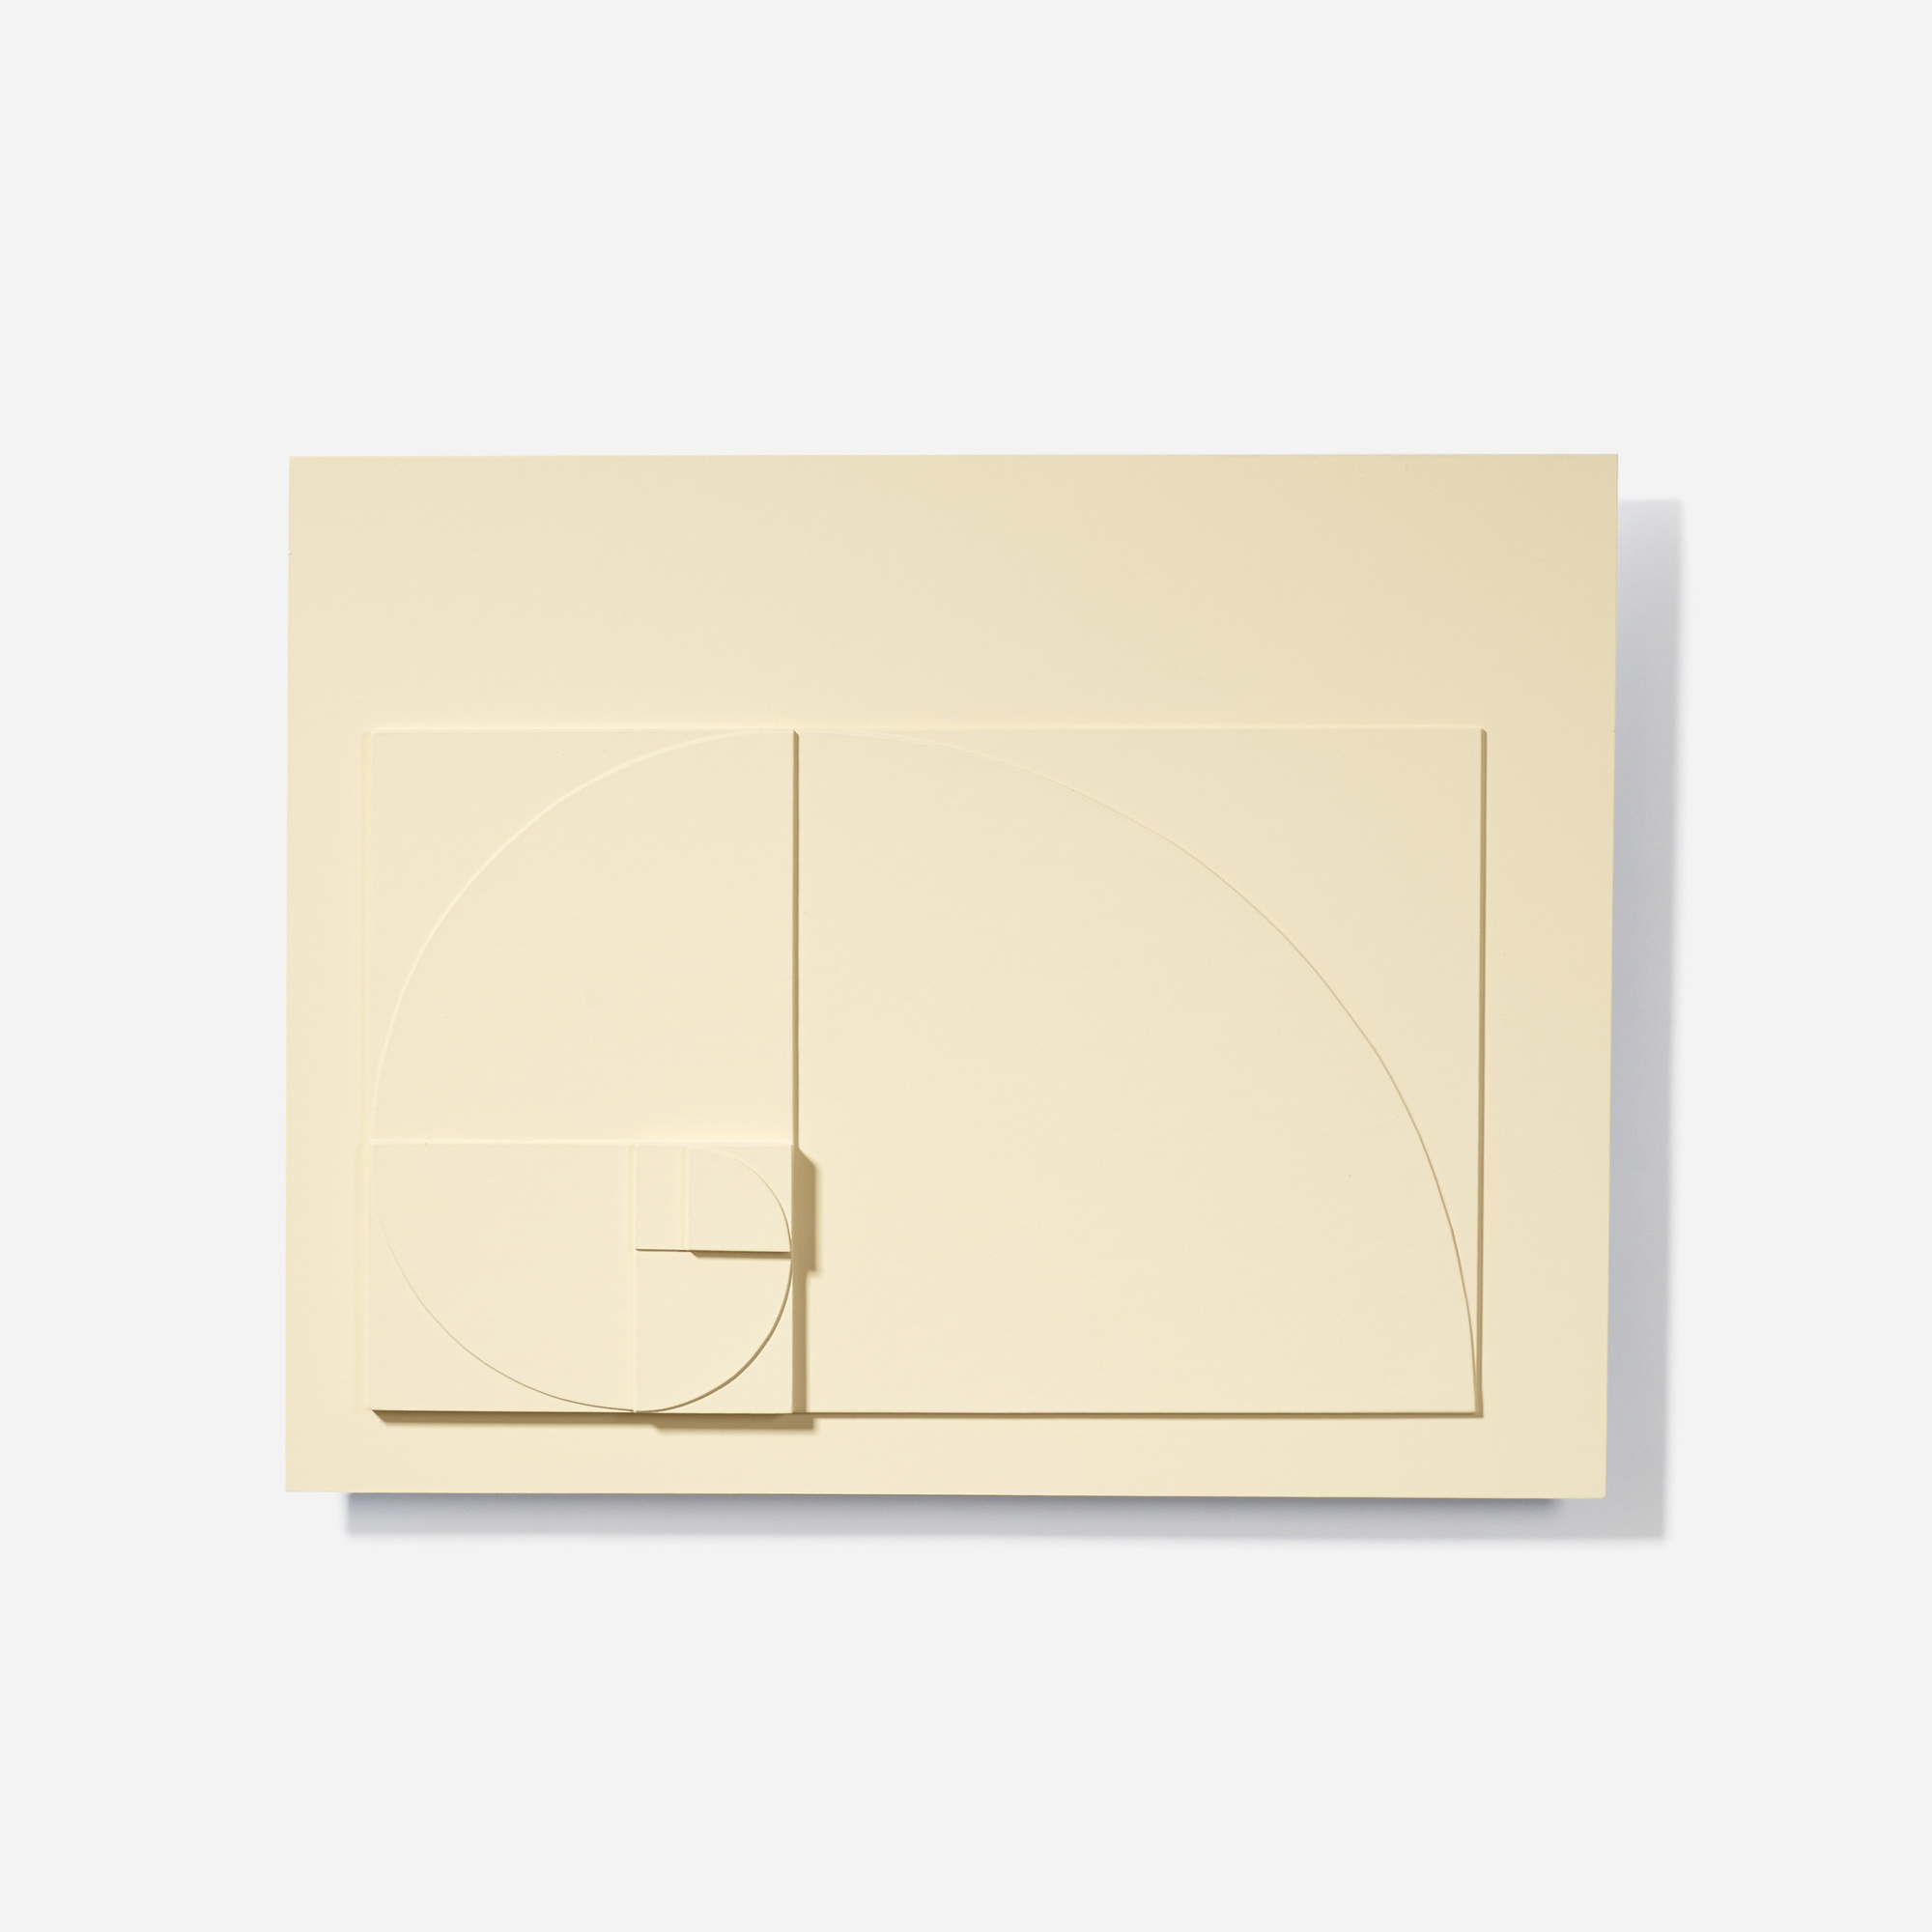 132: David Barr / Structurist Relief No. 344 (Reference to No. 20s) (1 of 3)